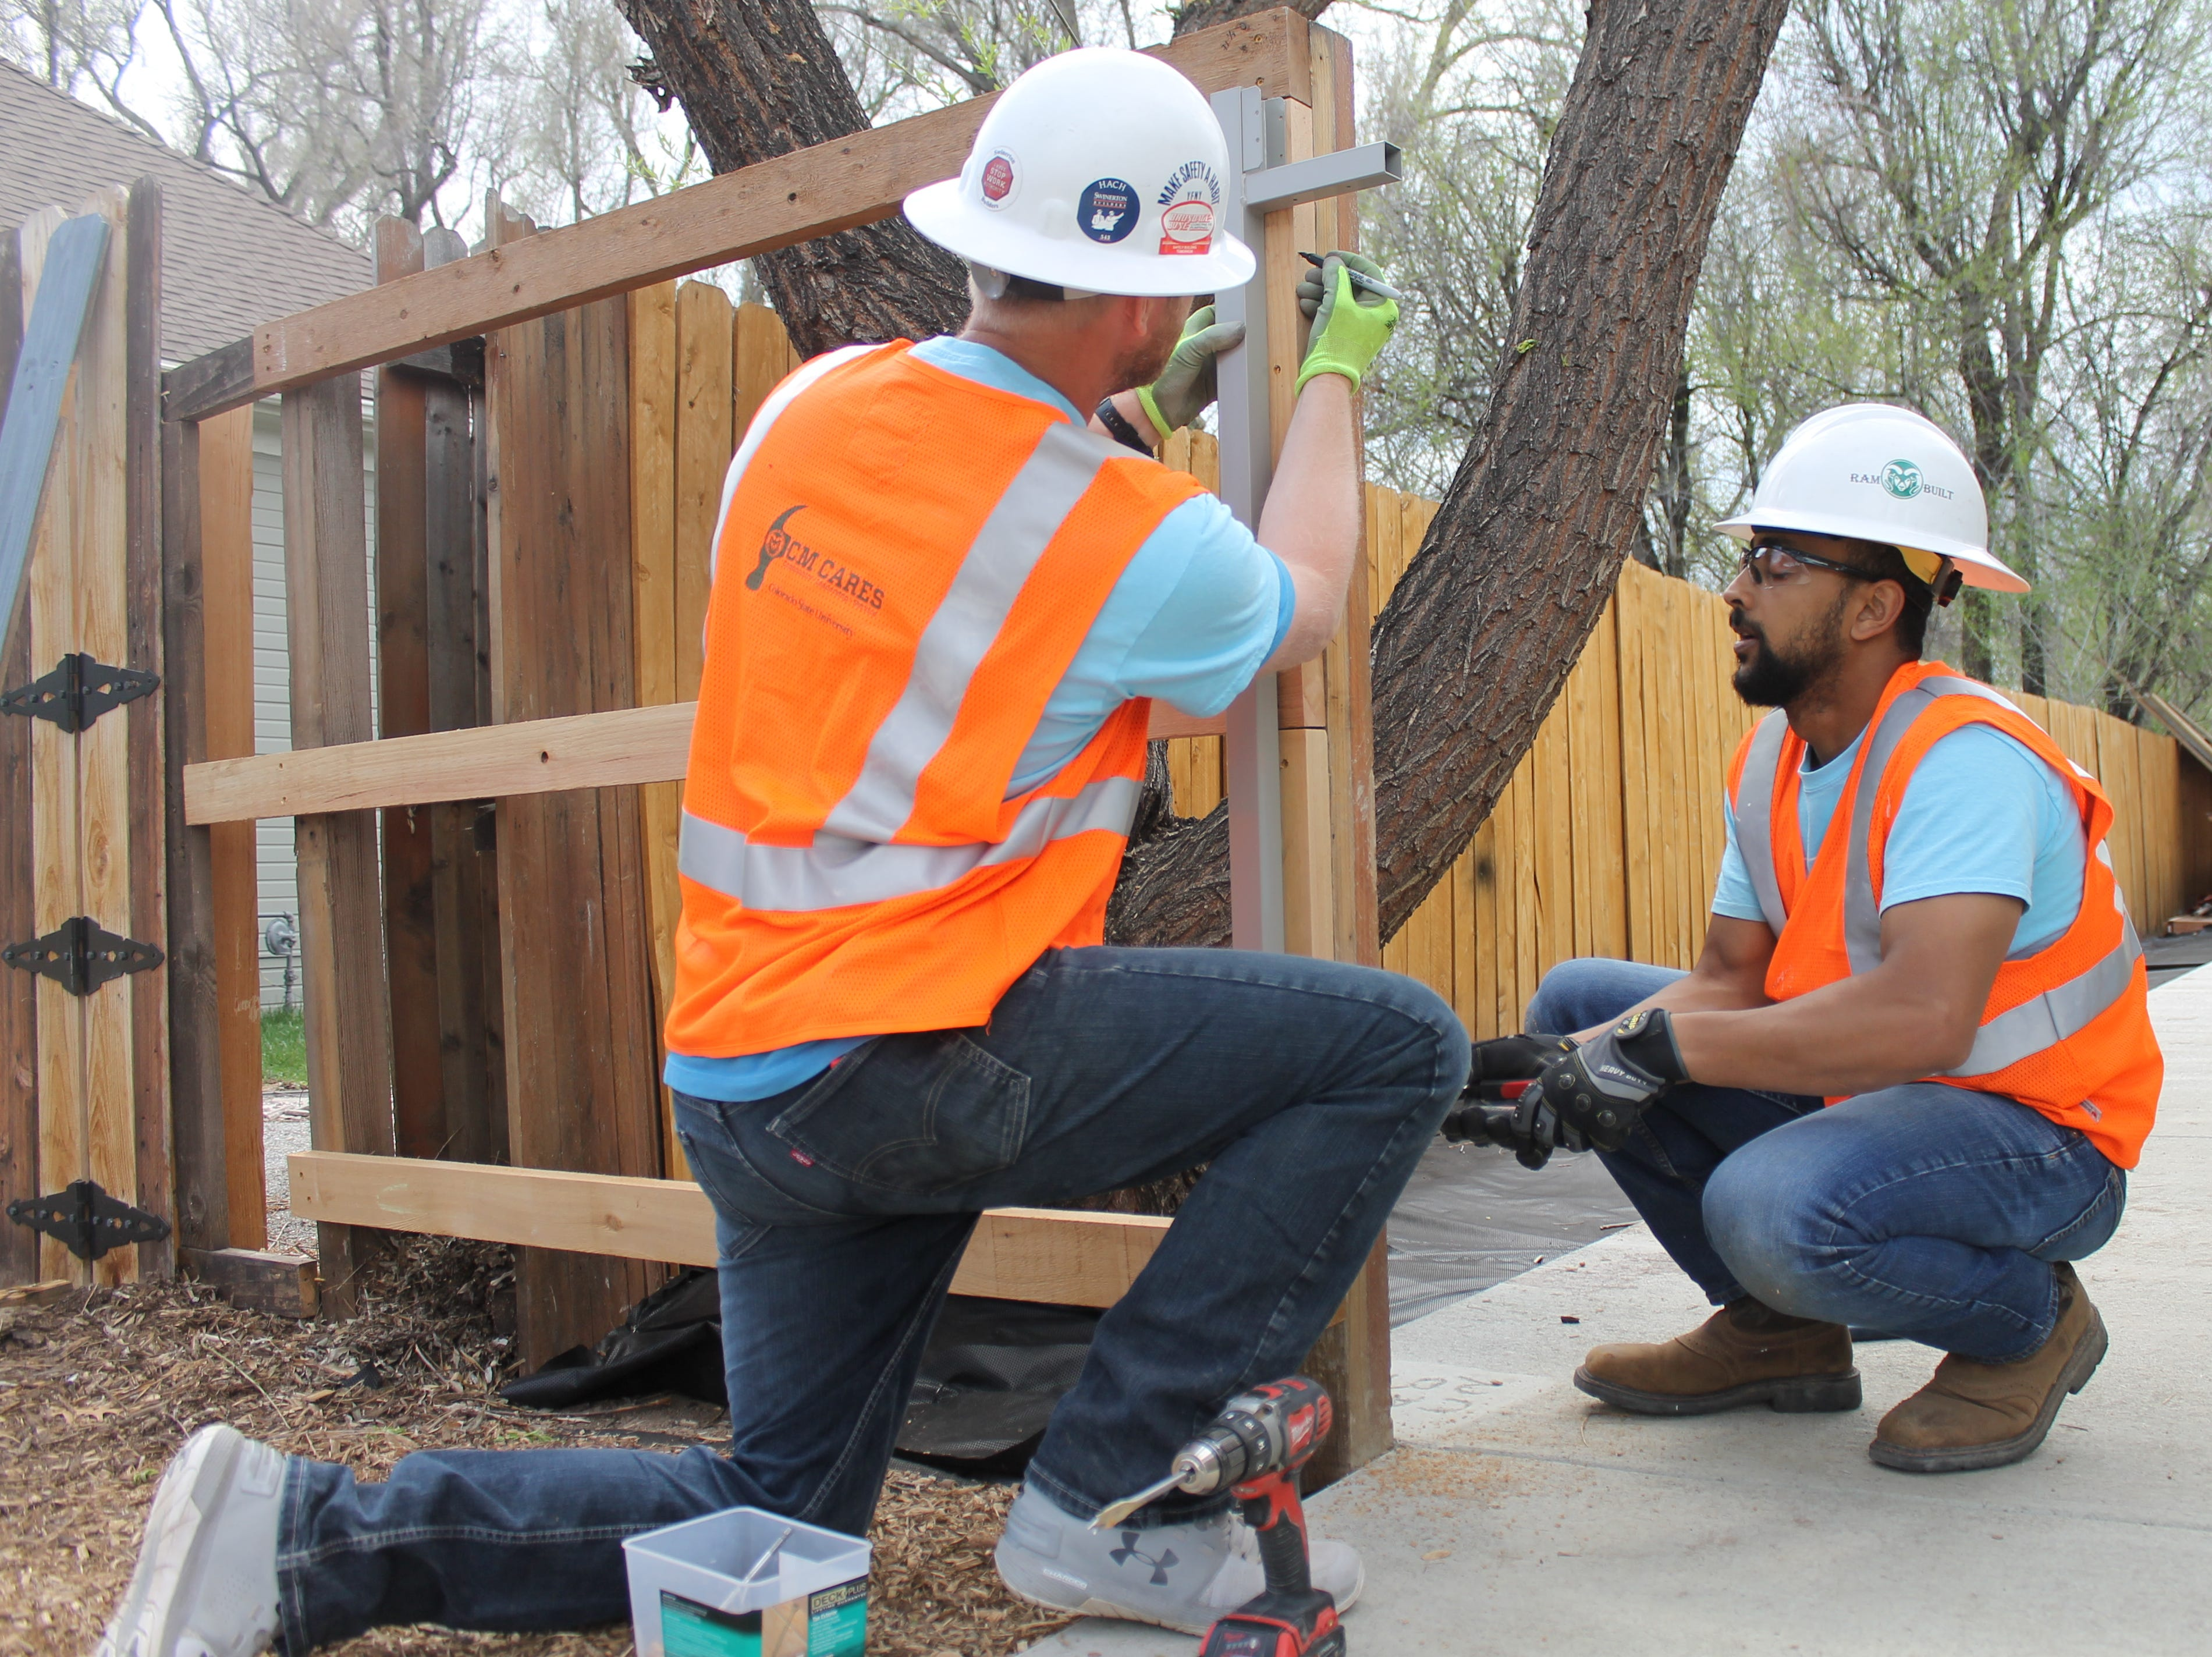 Matt Burns, left, and Saleh Bawareth work to build a gate on Saturday, April 27, 2019 that homeowner Terry Schlicting can easily use in his wheelchair. The students began working on the house in February as part of a class project.